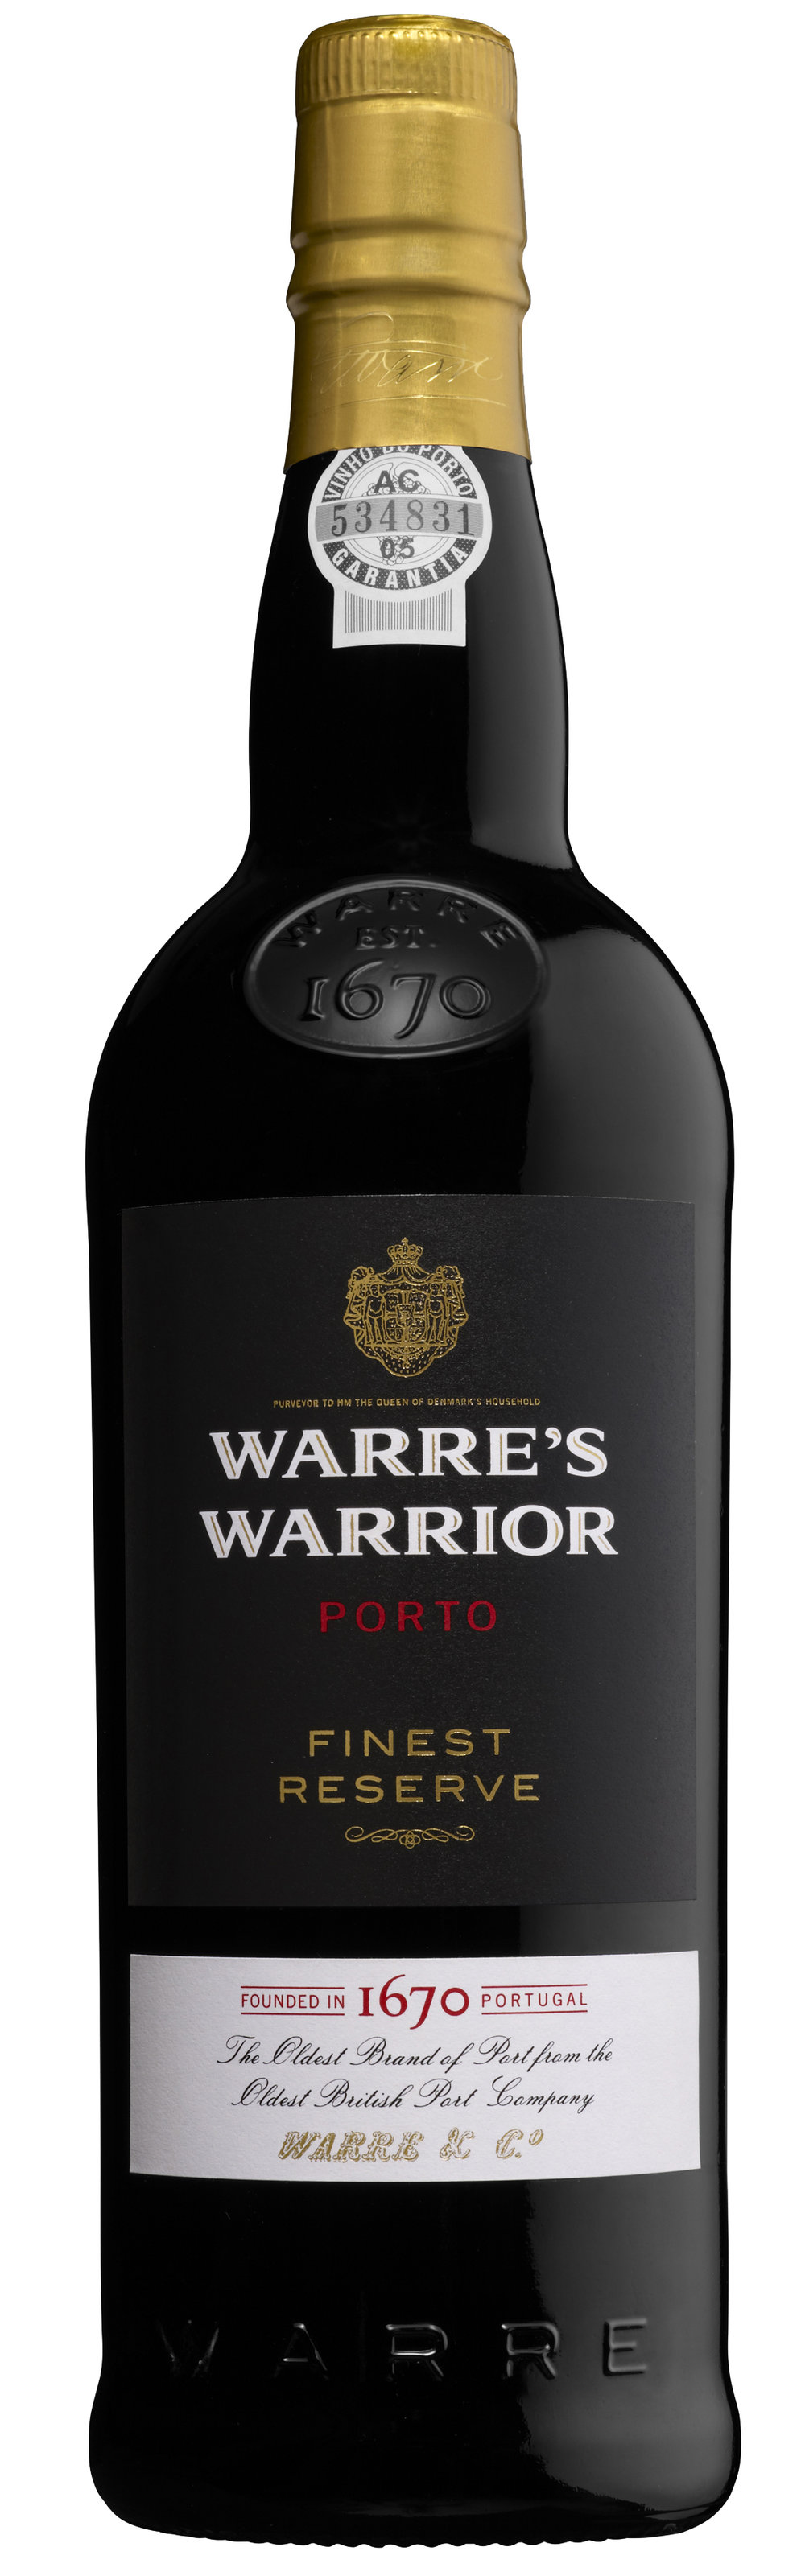 Warre's Warrior Port Bottle.jpg